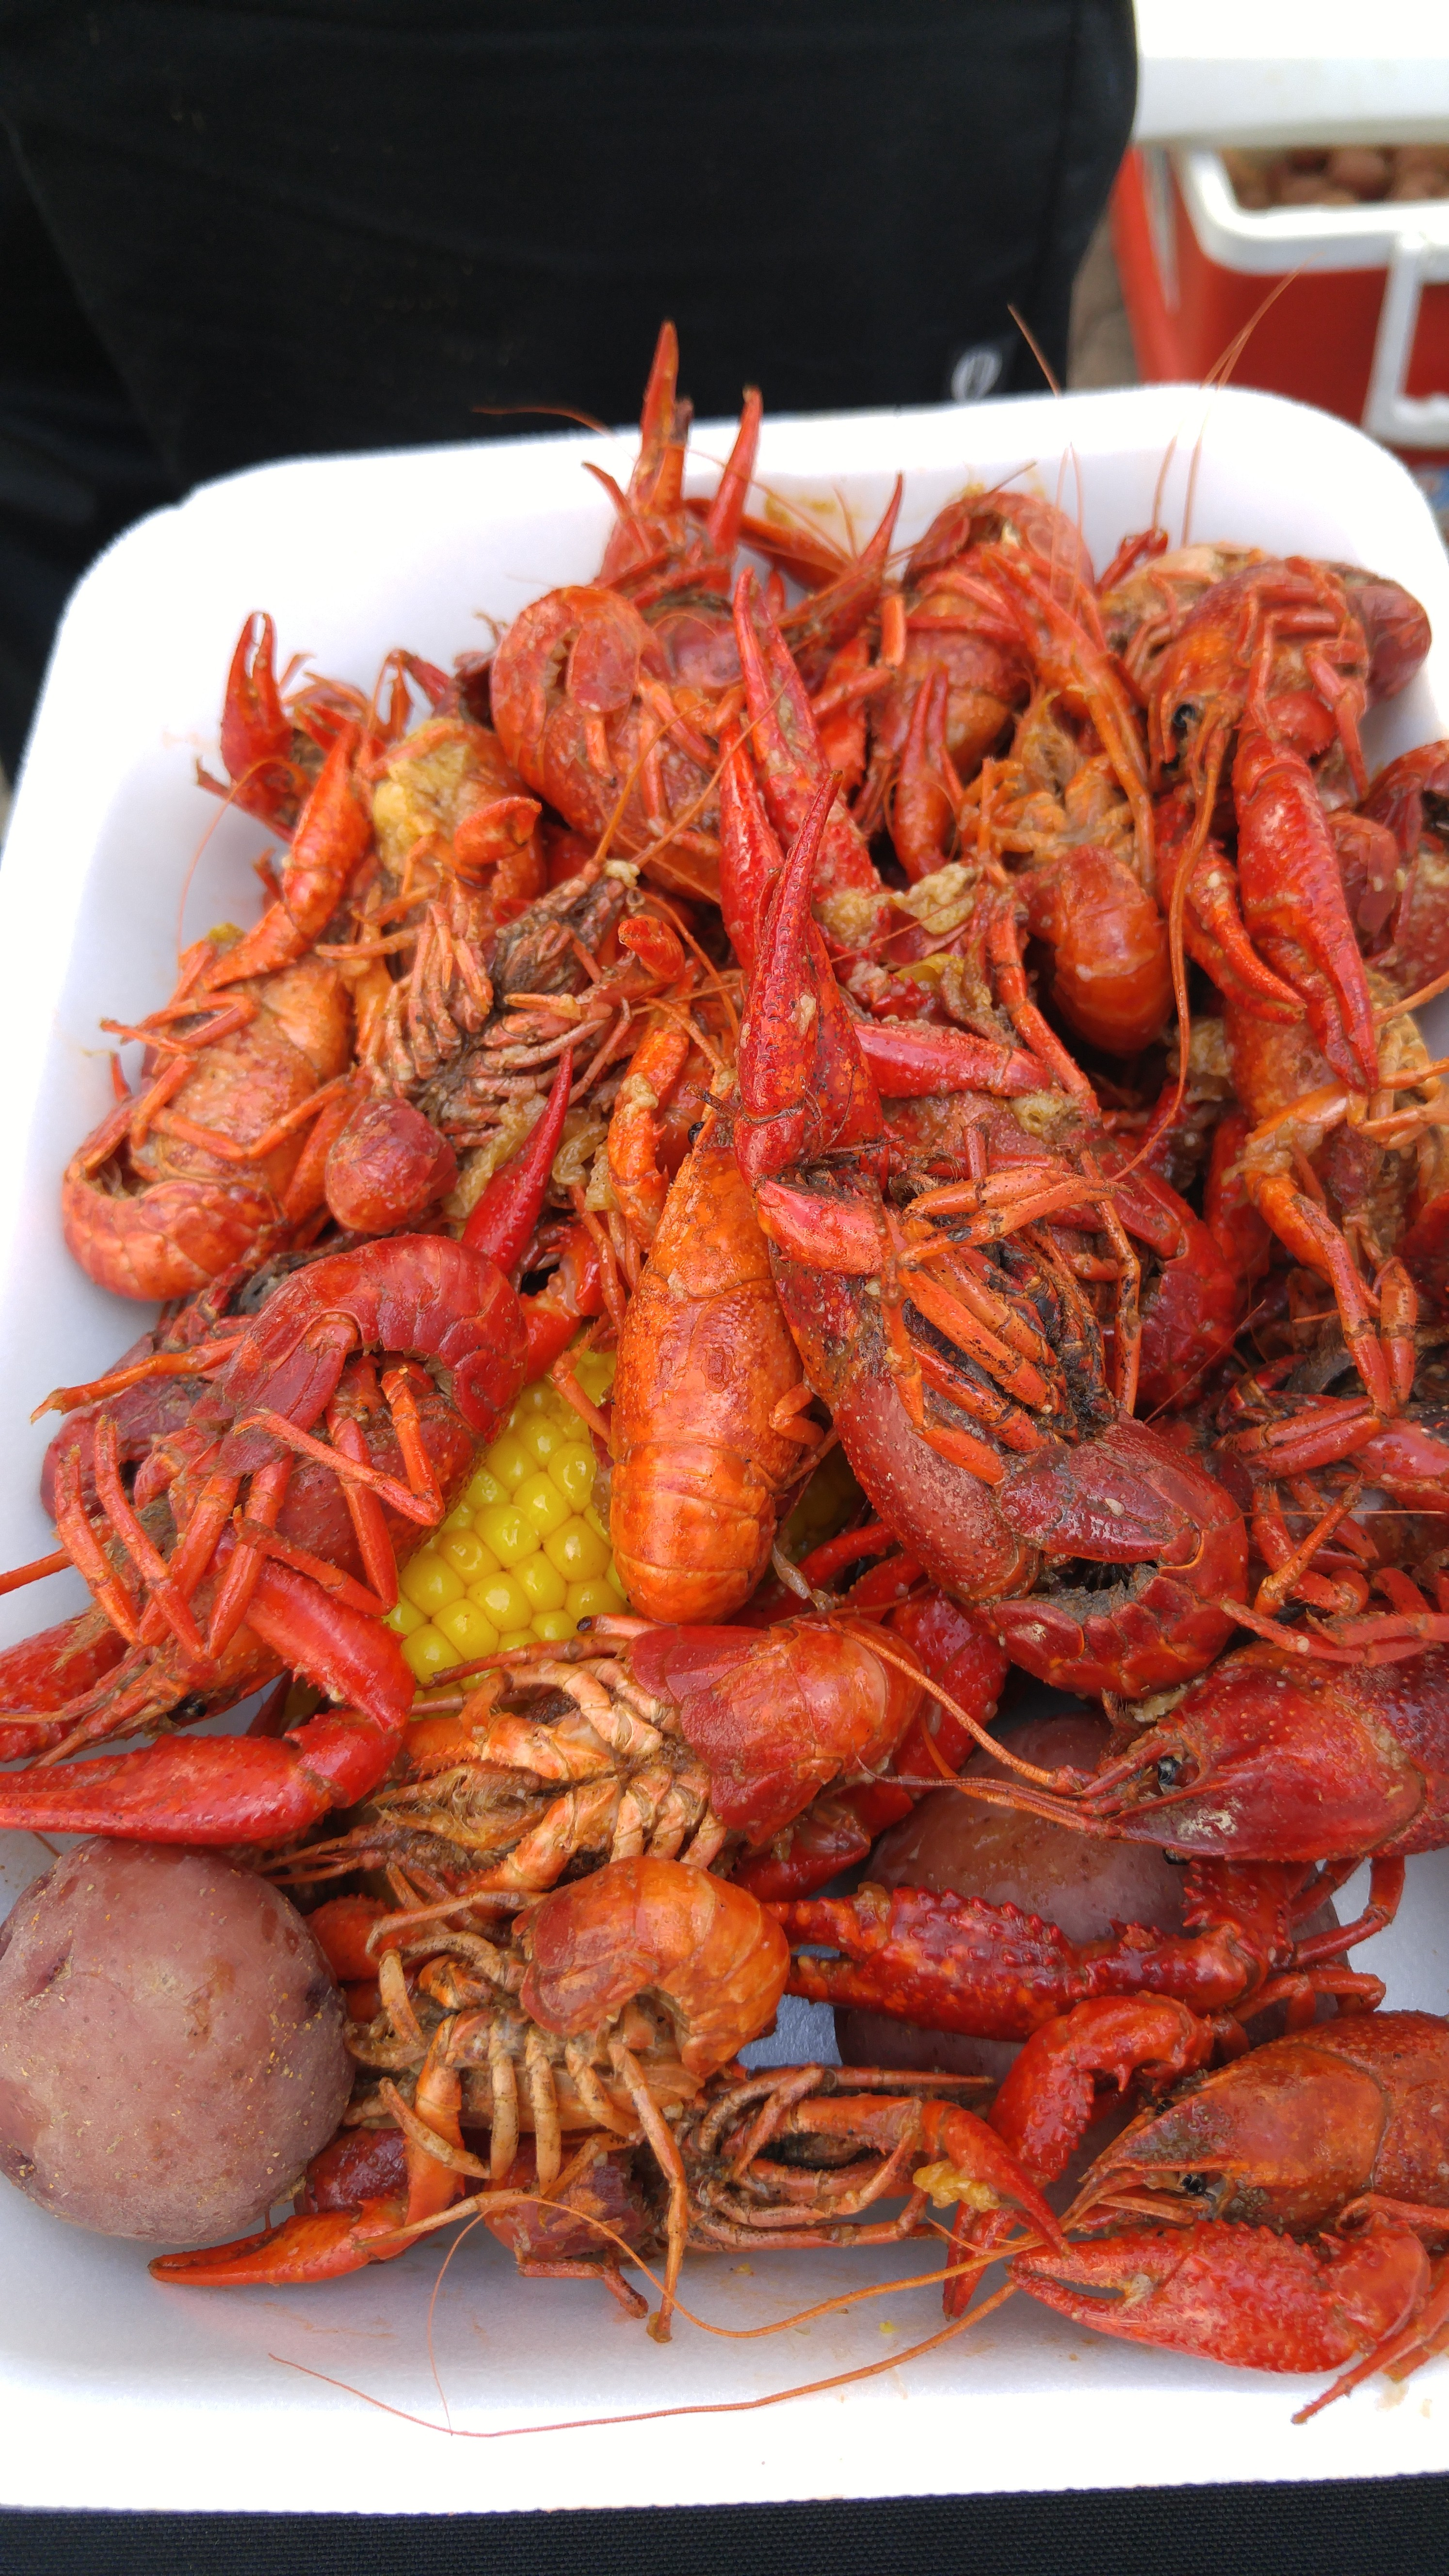 2016 Live After 5 Crawfish Boil